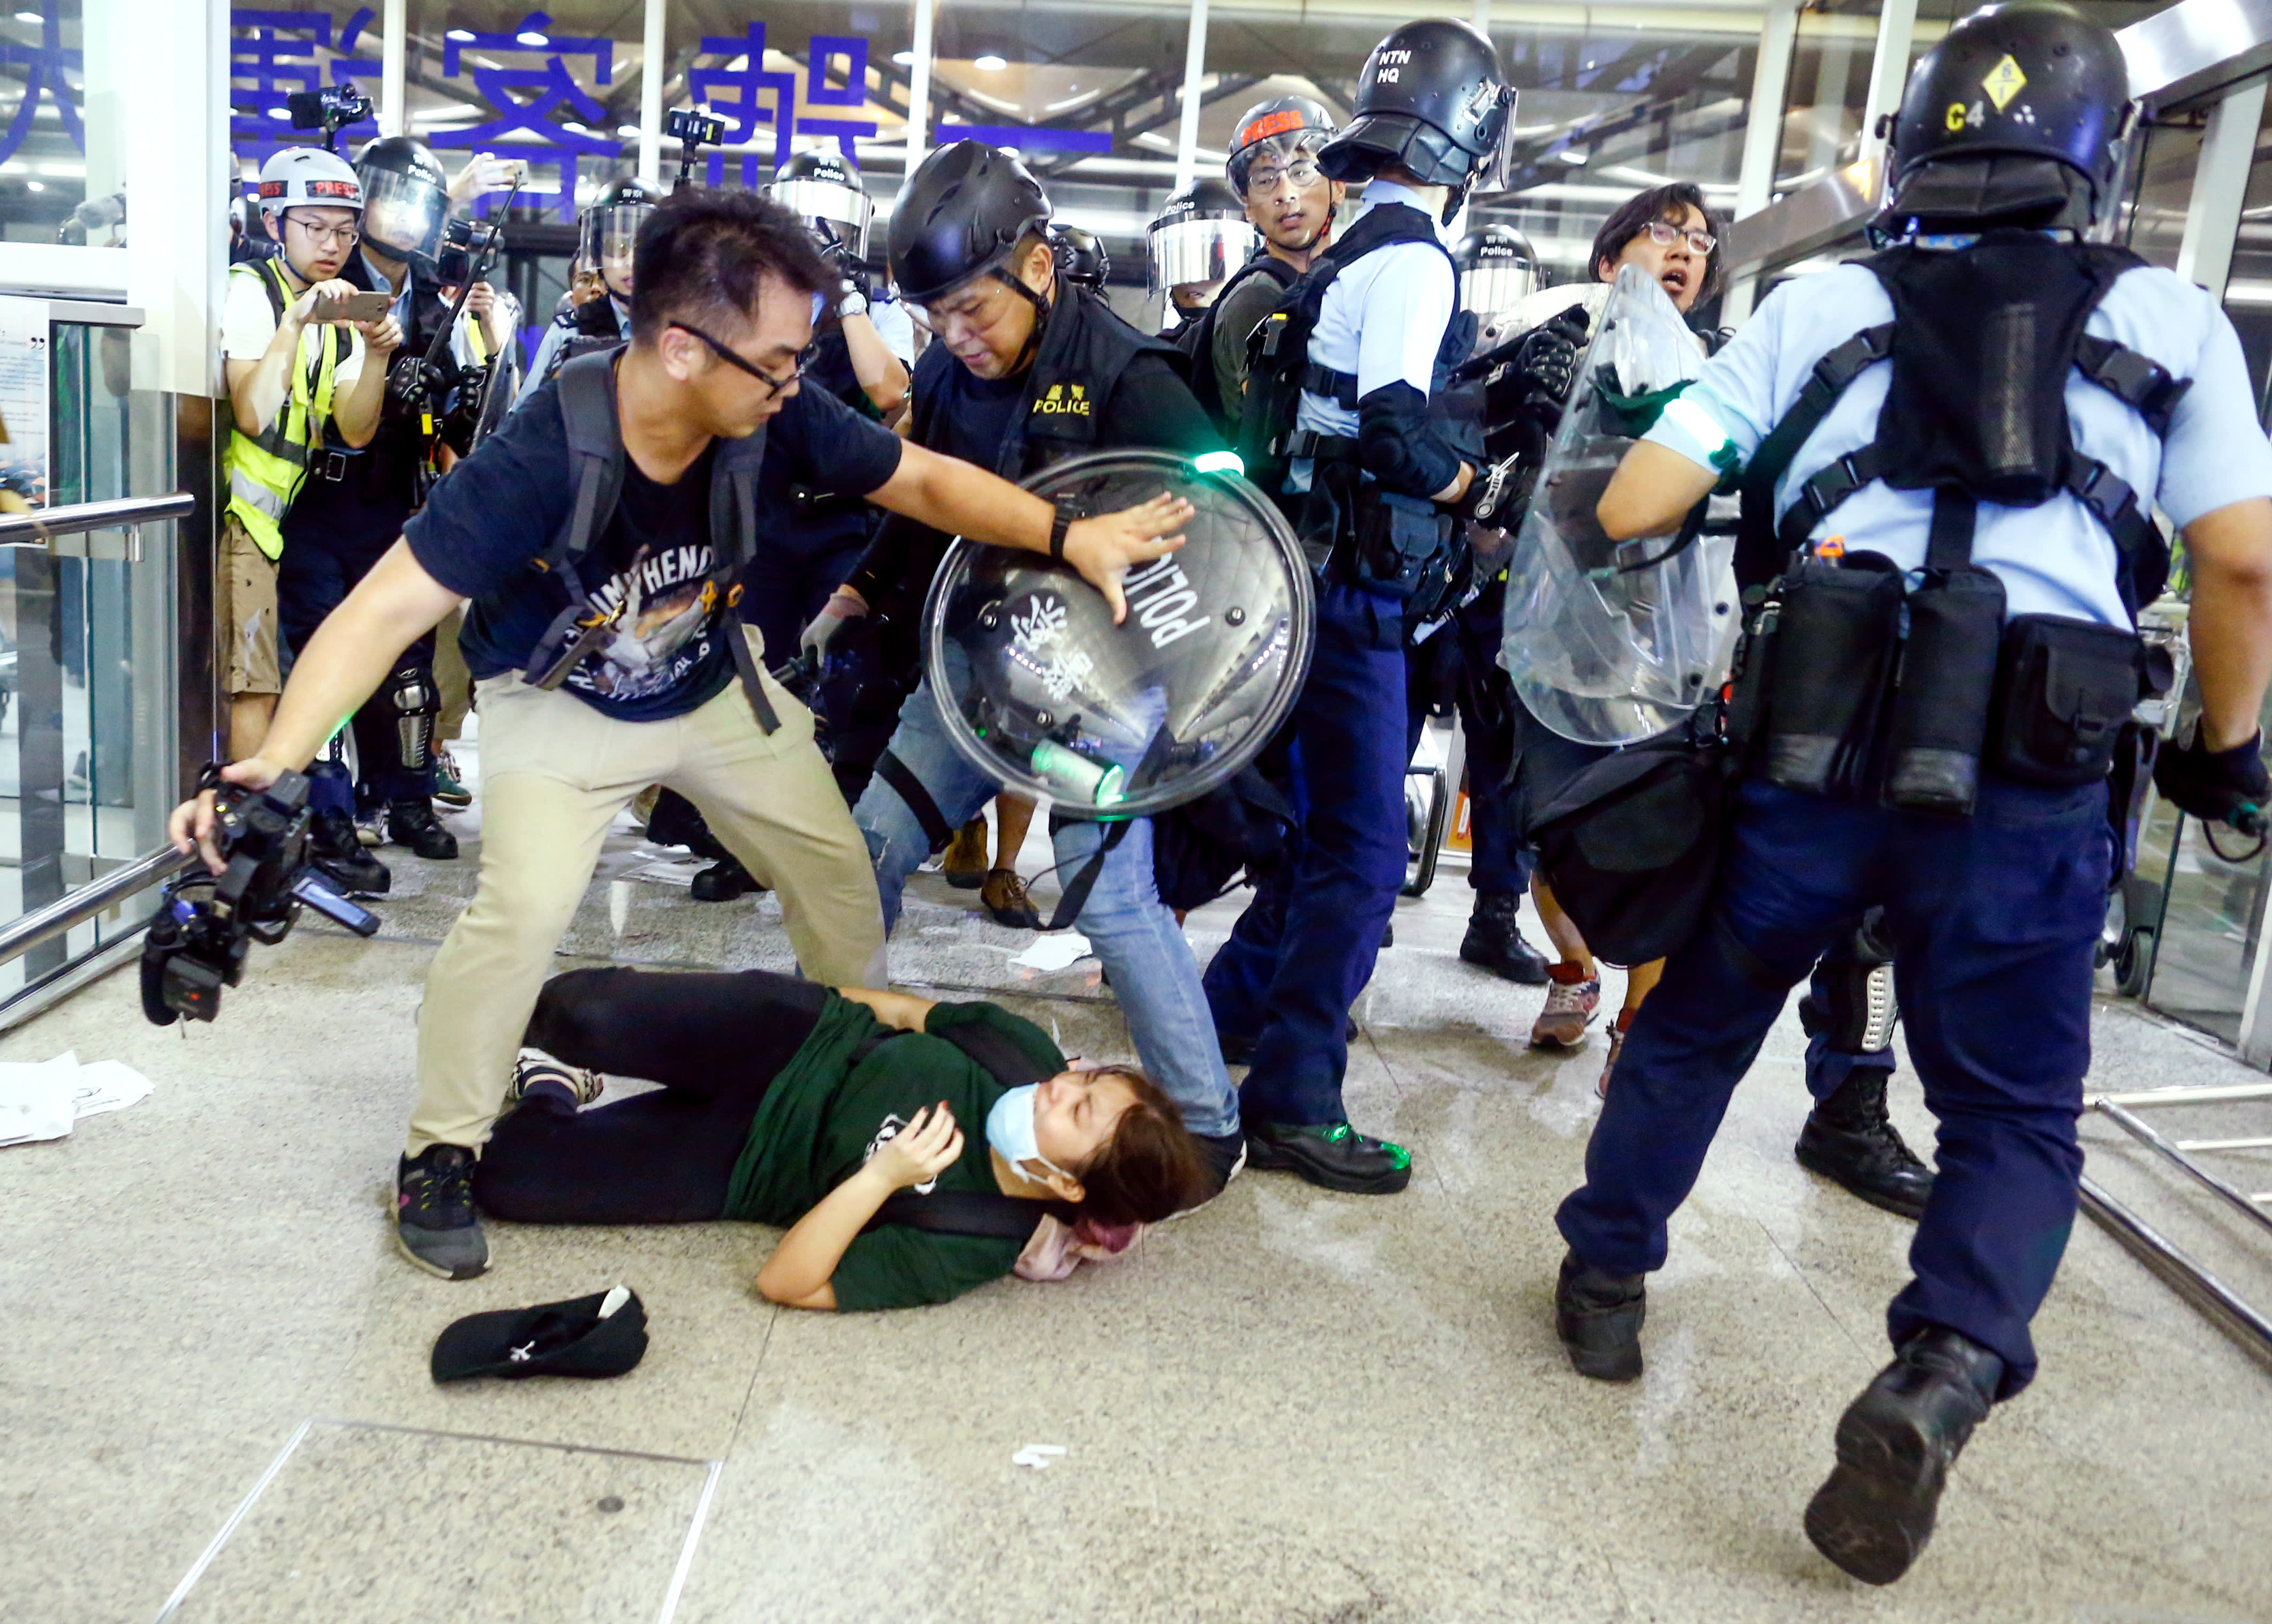 Hong Kong airport returns to calm, after riot police clashed with protesters earlier